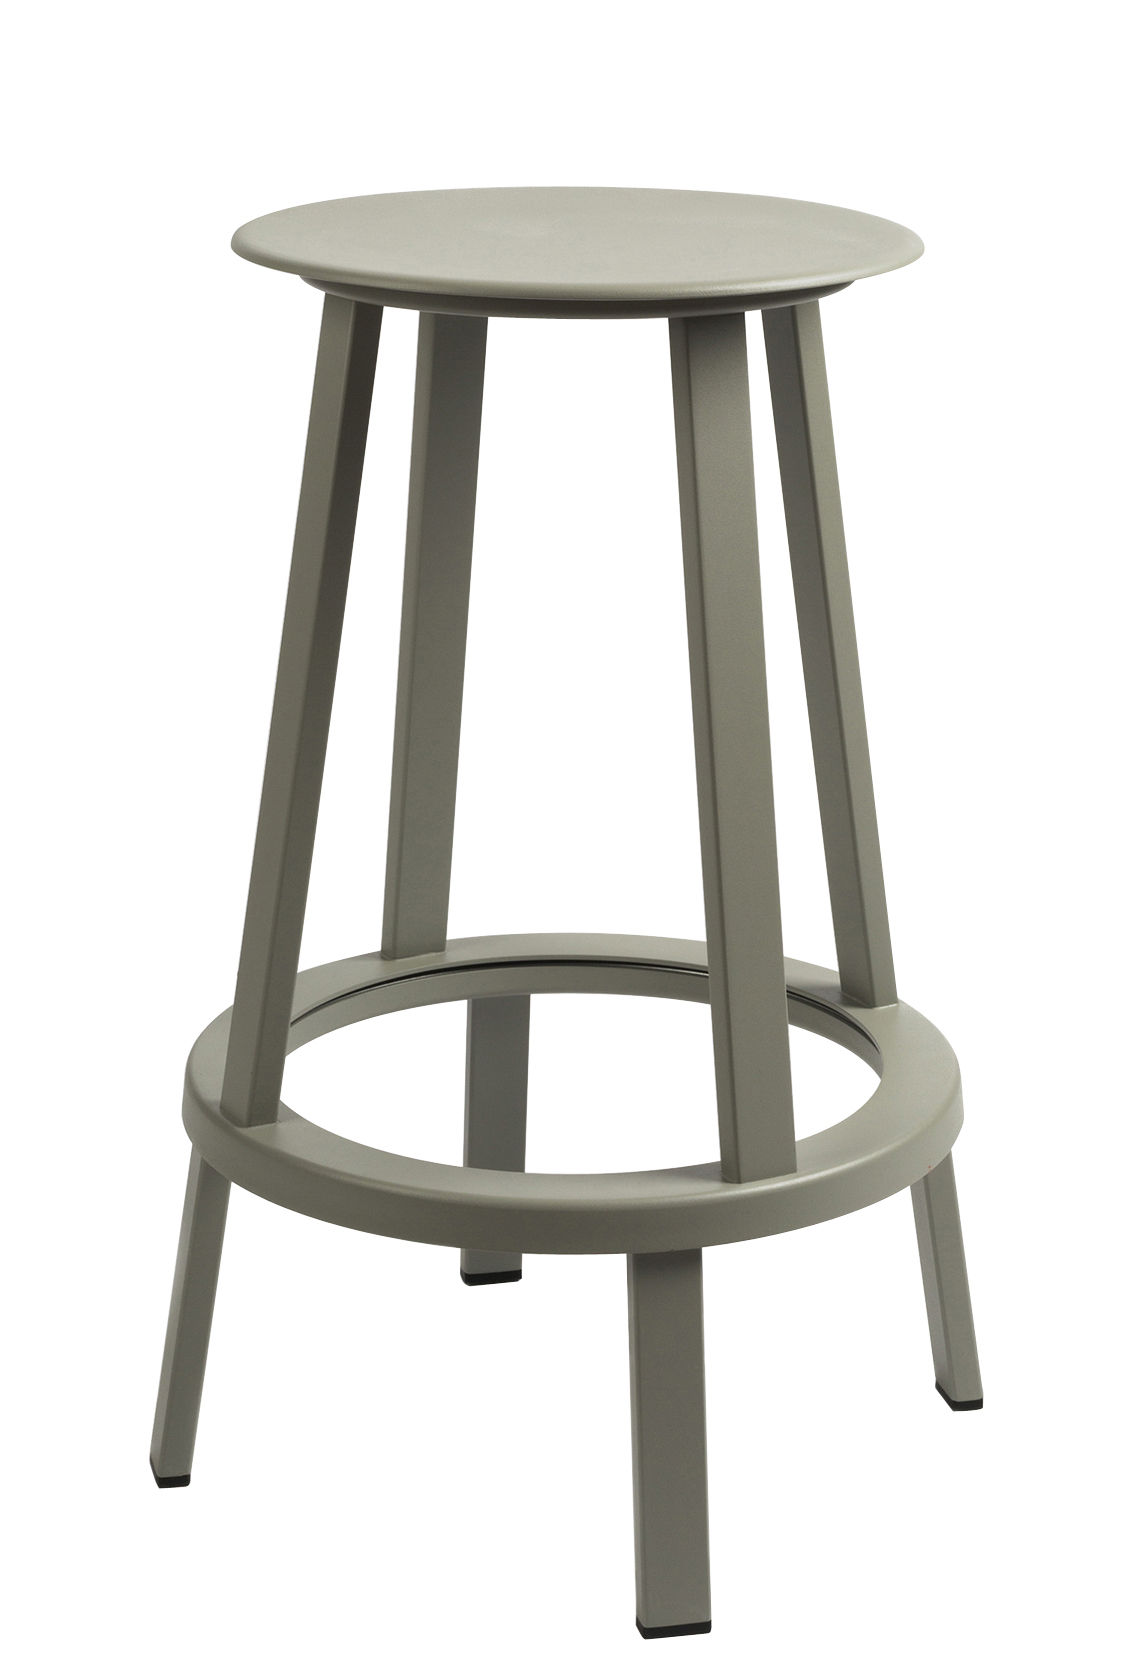 Furniture - Bar Stools - Revolver Swivel bar stool - H 65 cm - Metal by Hay - Grey - Steel xith epowy paint